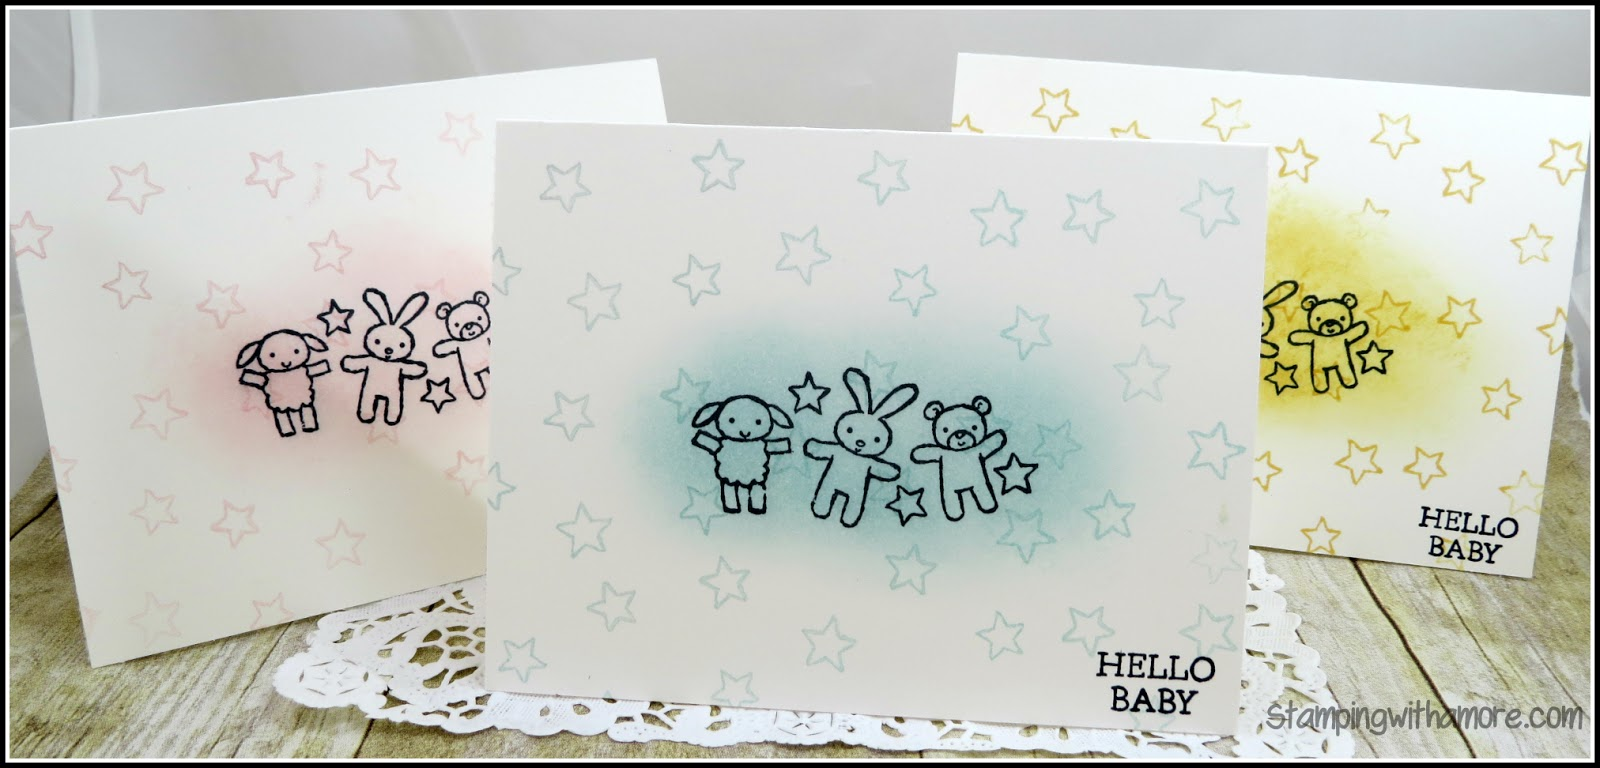 Stampingwithamore: TWINKLE, TWINKLE COORDINATING BABY CARD